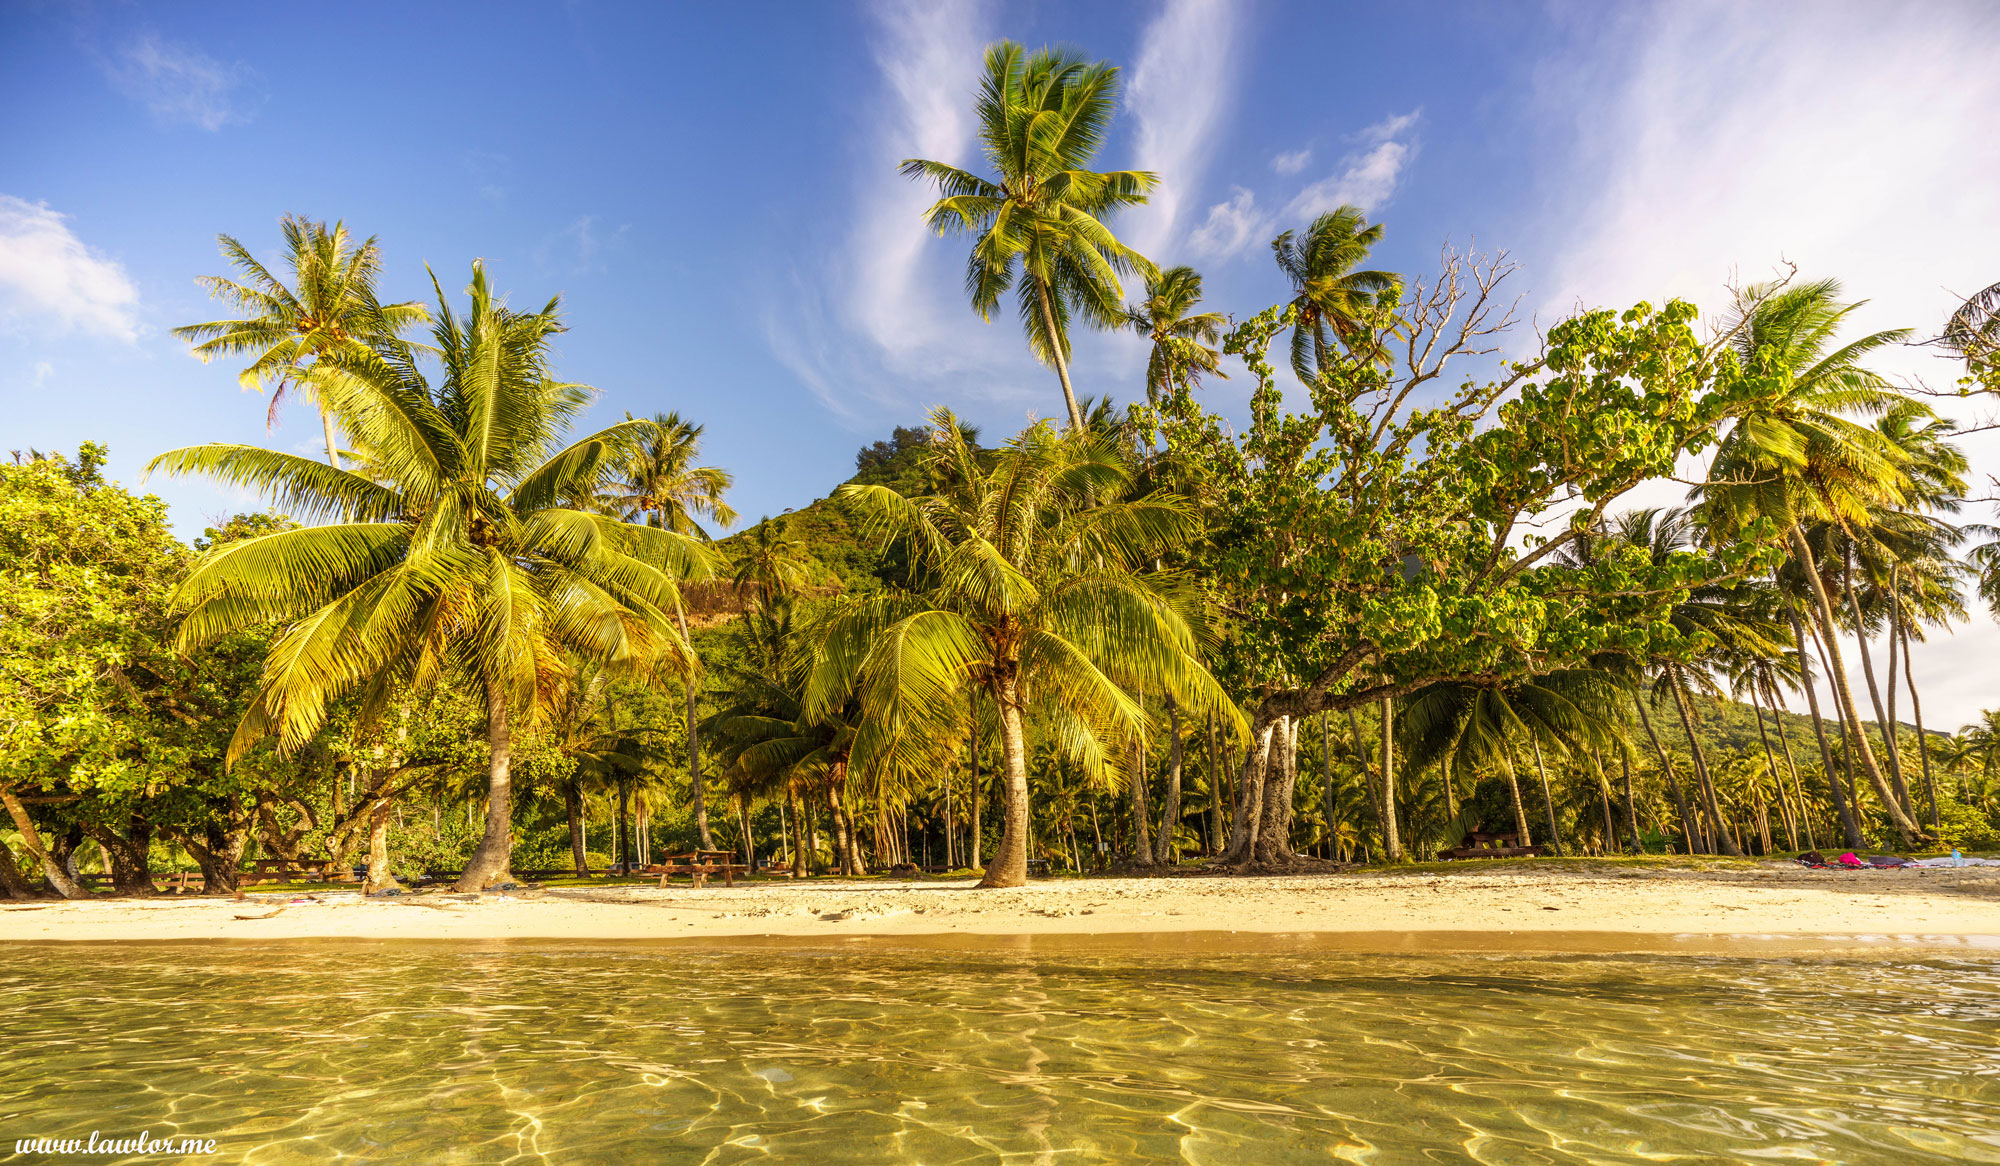 Ta'ahiamanu (Mareto) Beach, Moorea - French Polynesia, Free Landscape Photography, free landscape photos, free nature images, free HD images, free high definition stock images, free stock images download, desktop background, desktop wallpapers, free screensaver, landscape photography